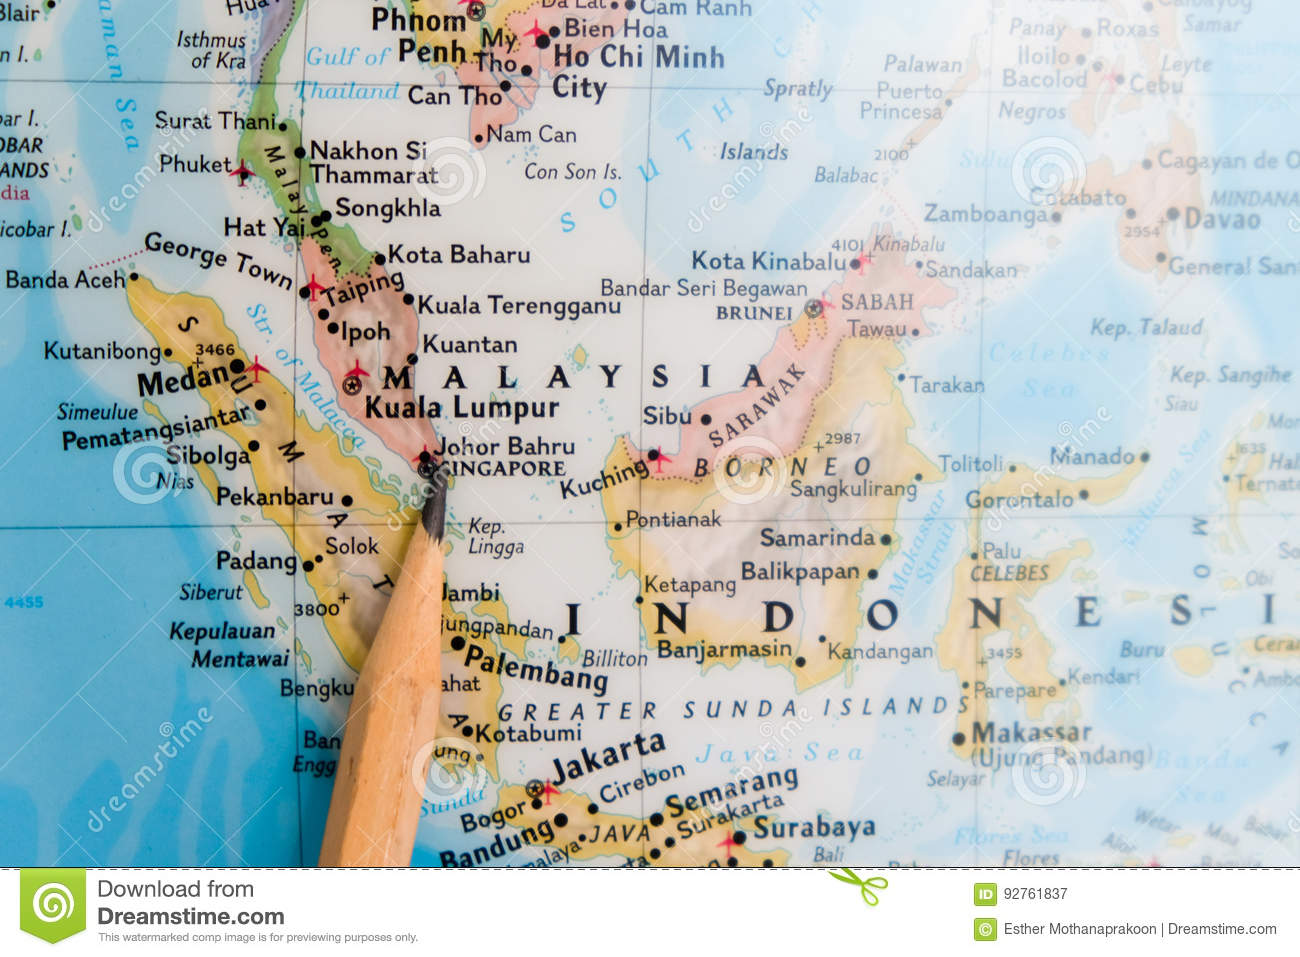 Focus On Singapore On The World Map With Pencil Pointing Stock Image